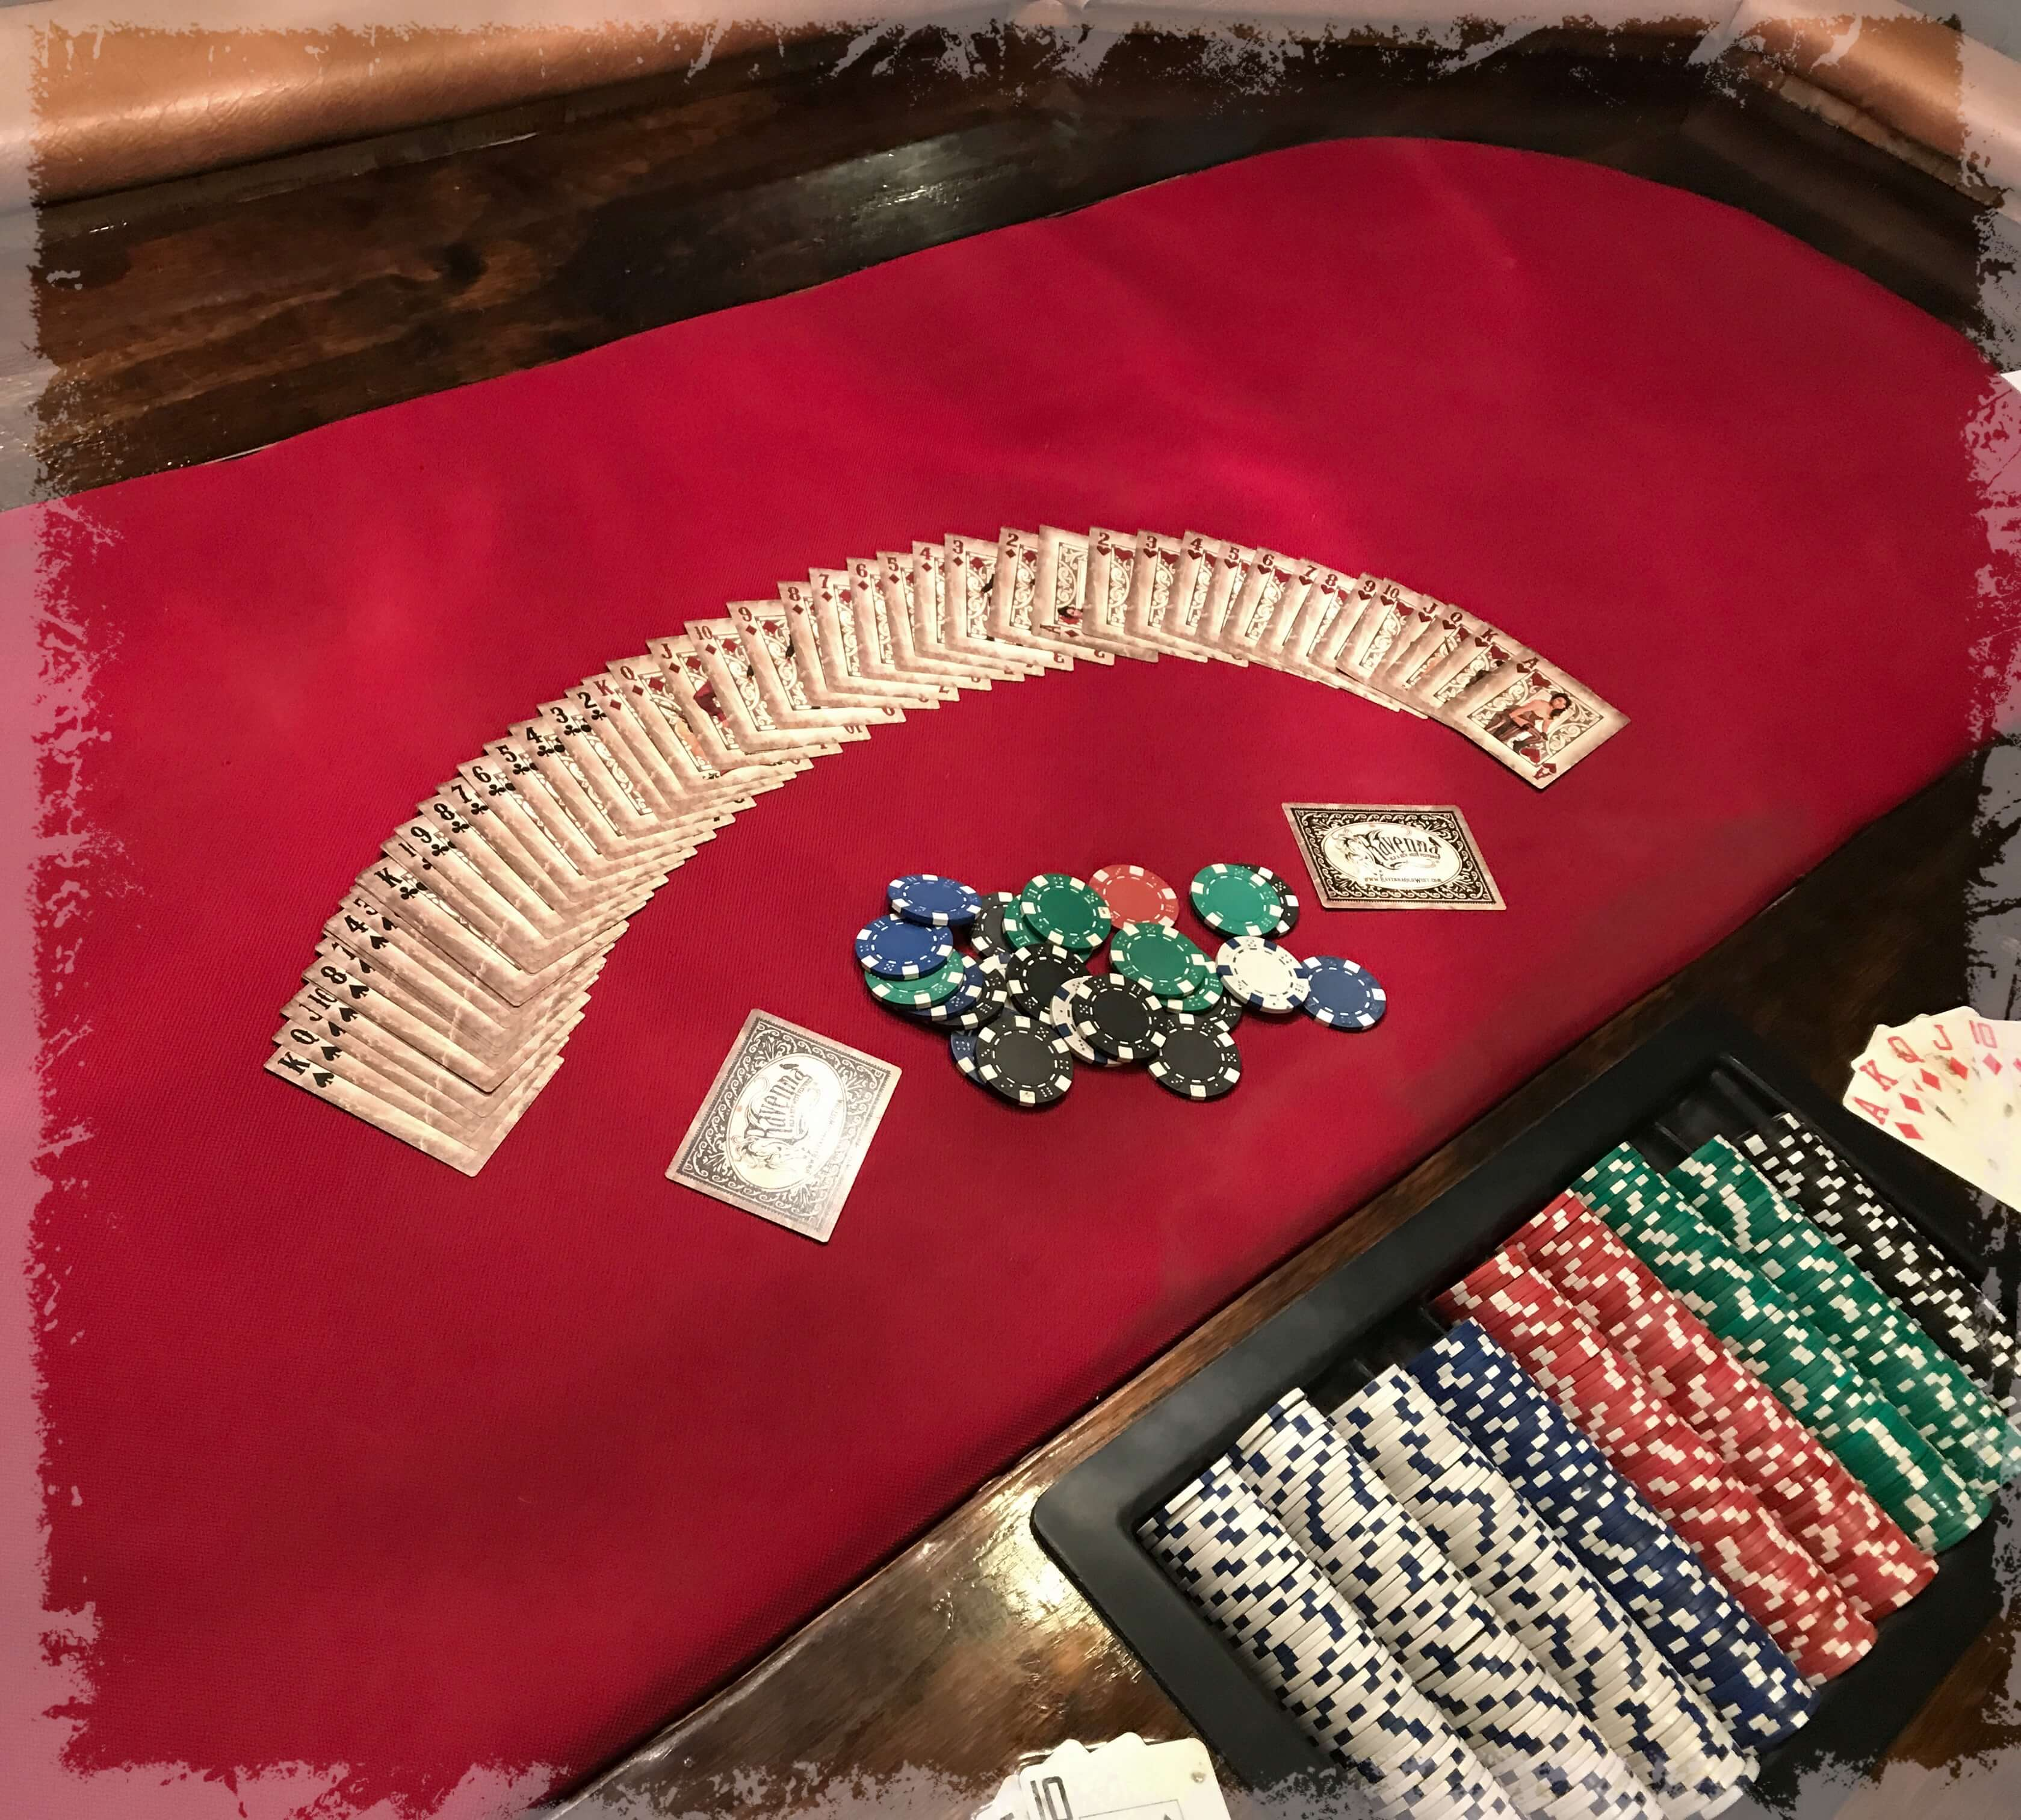 Casino feet on the table